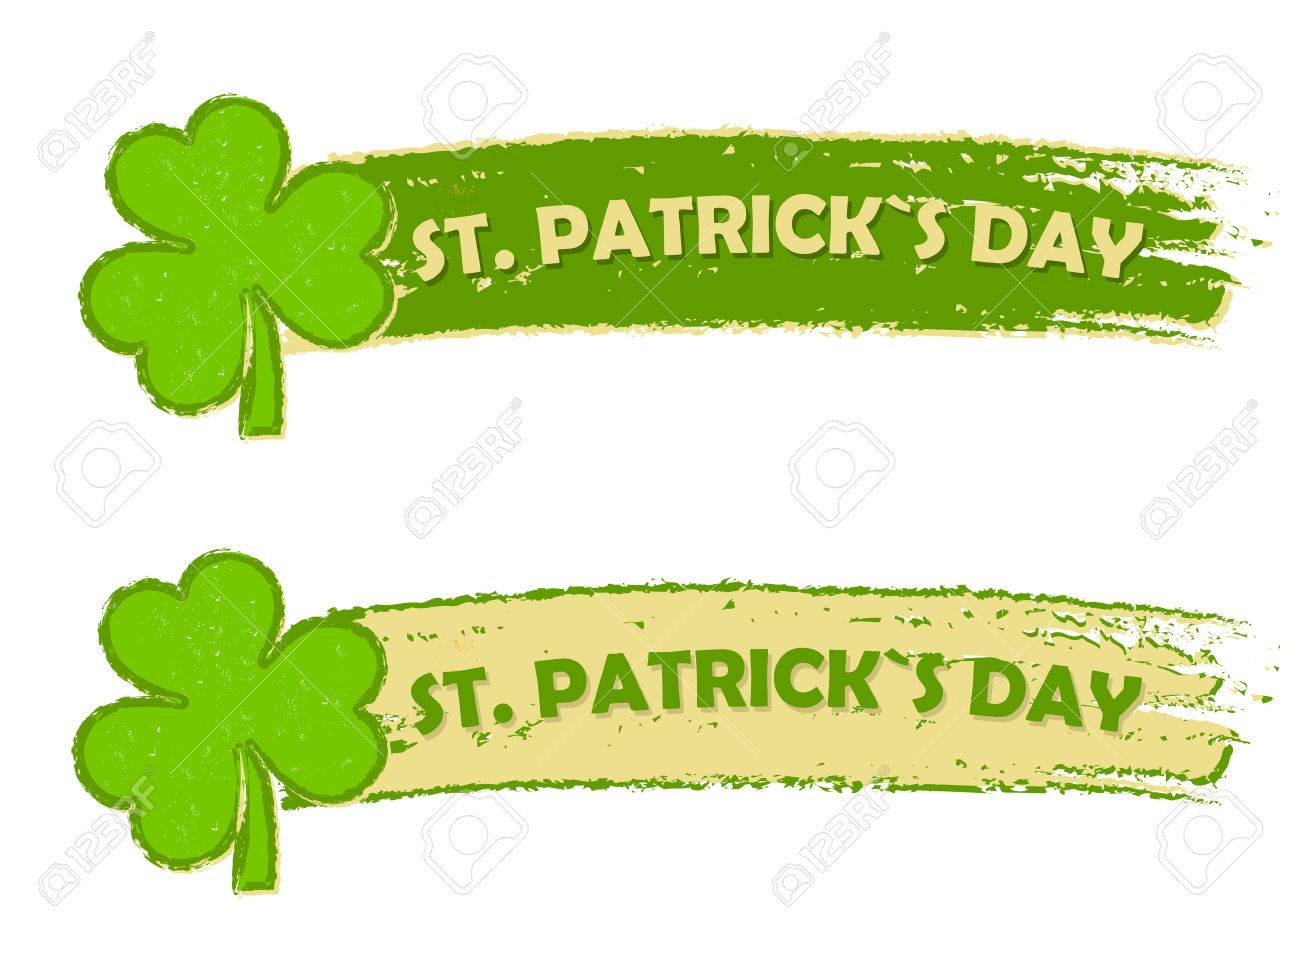 Happy St Patricks Day Text In Two Green Drawn Banners With